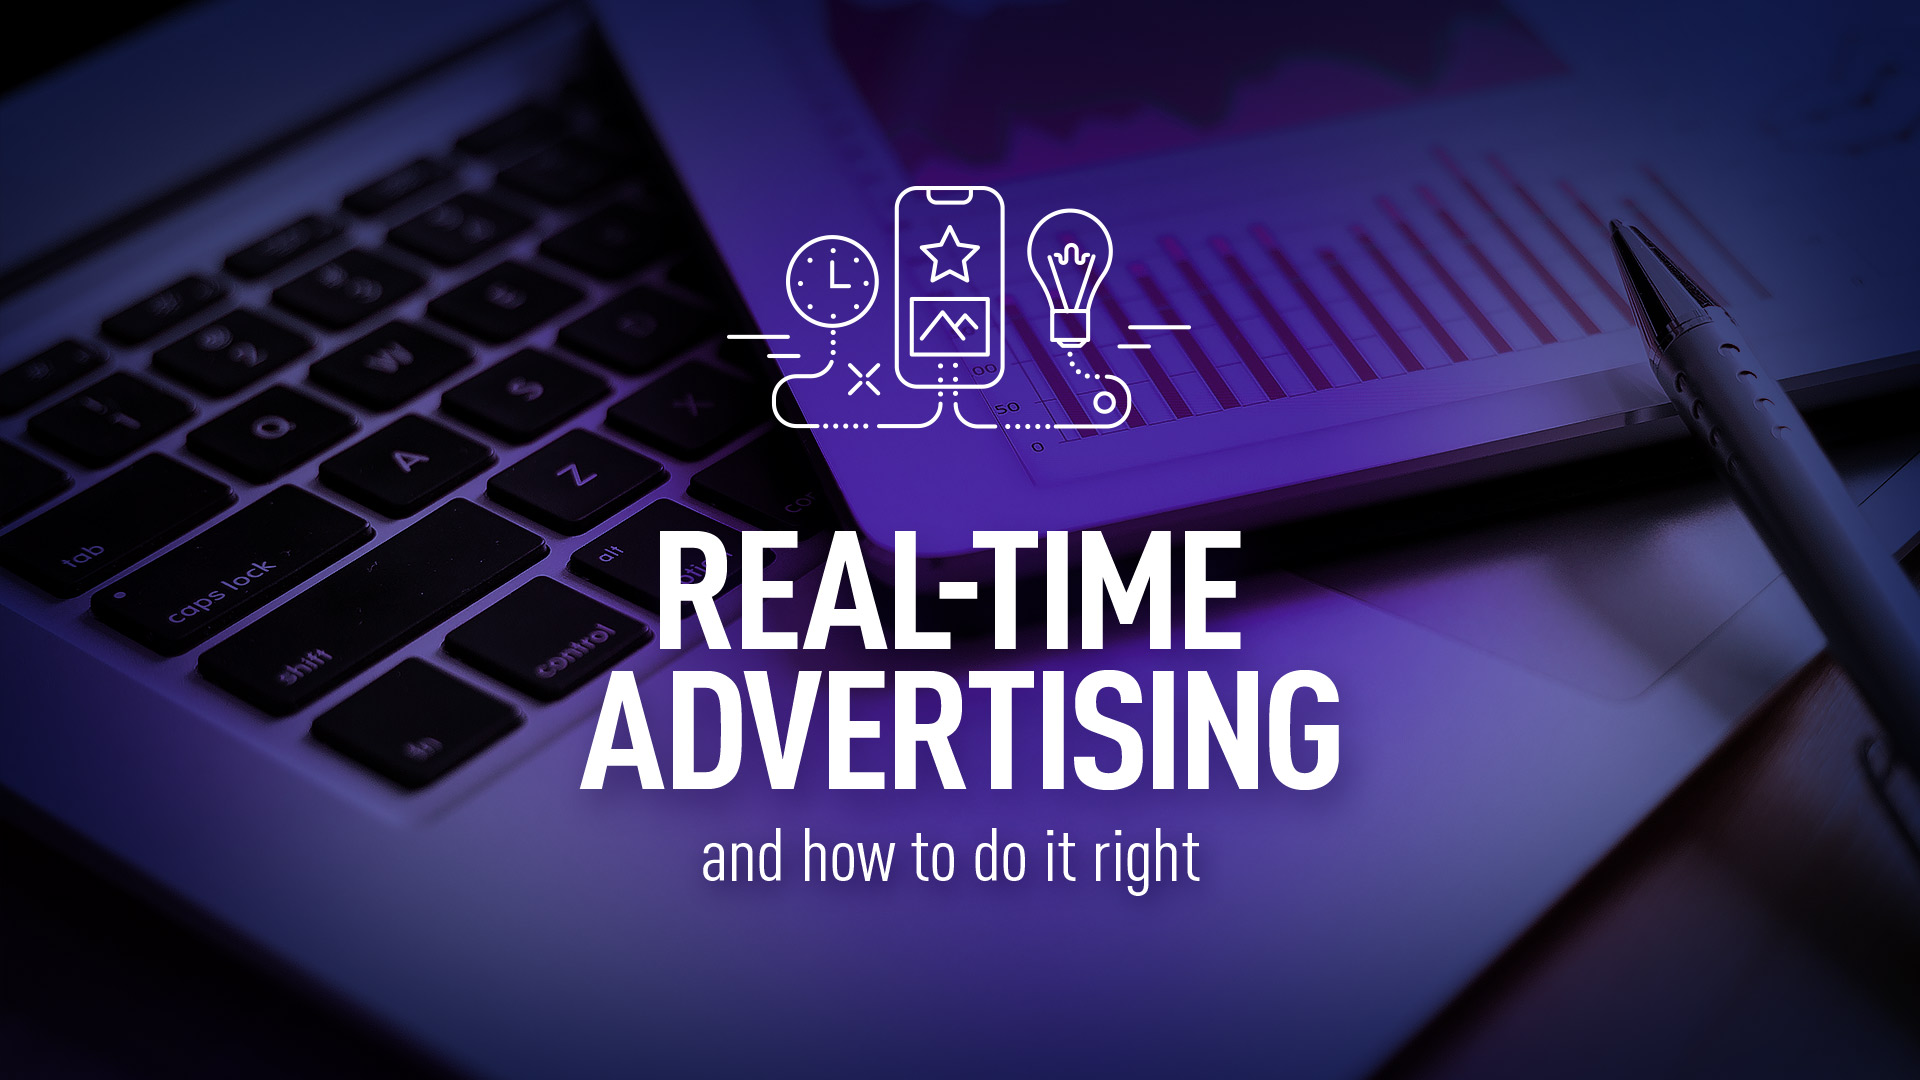 Real-time advertising and how to do it right